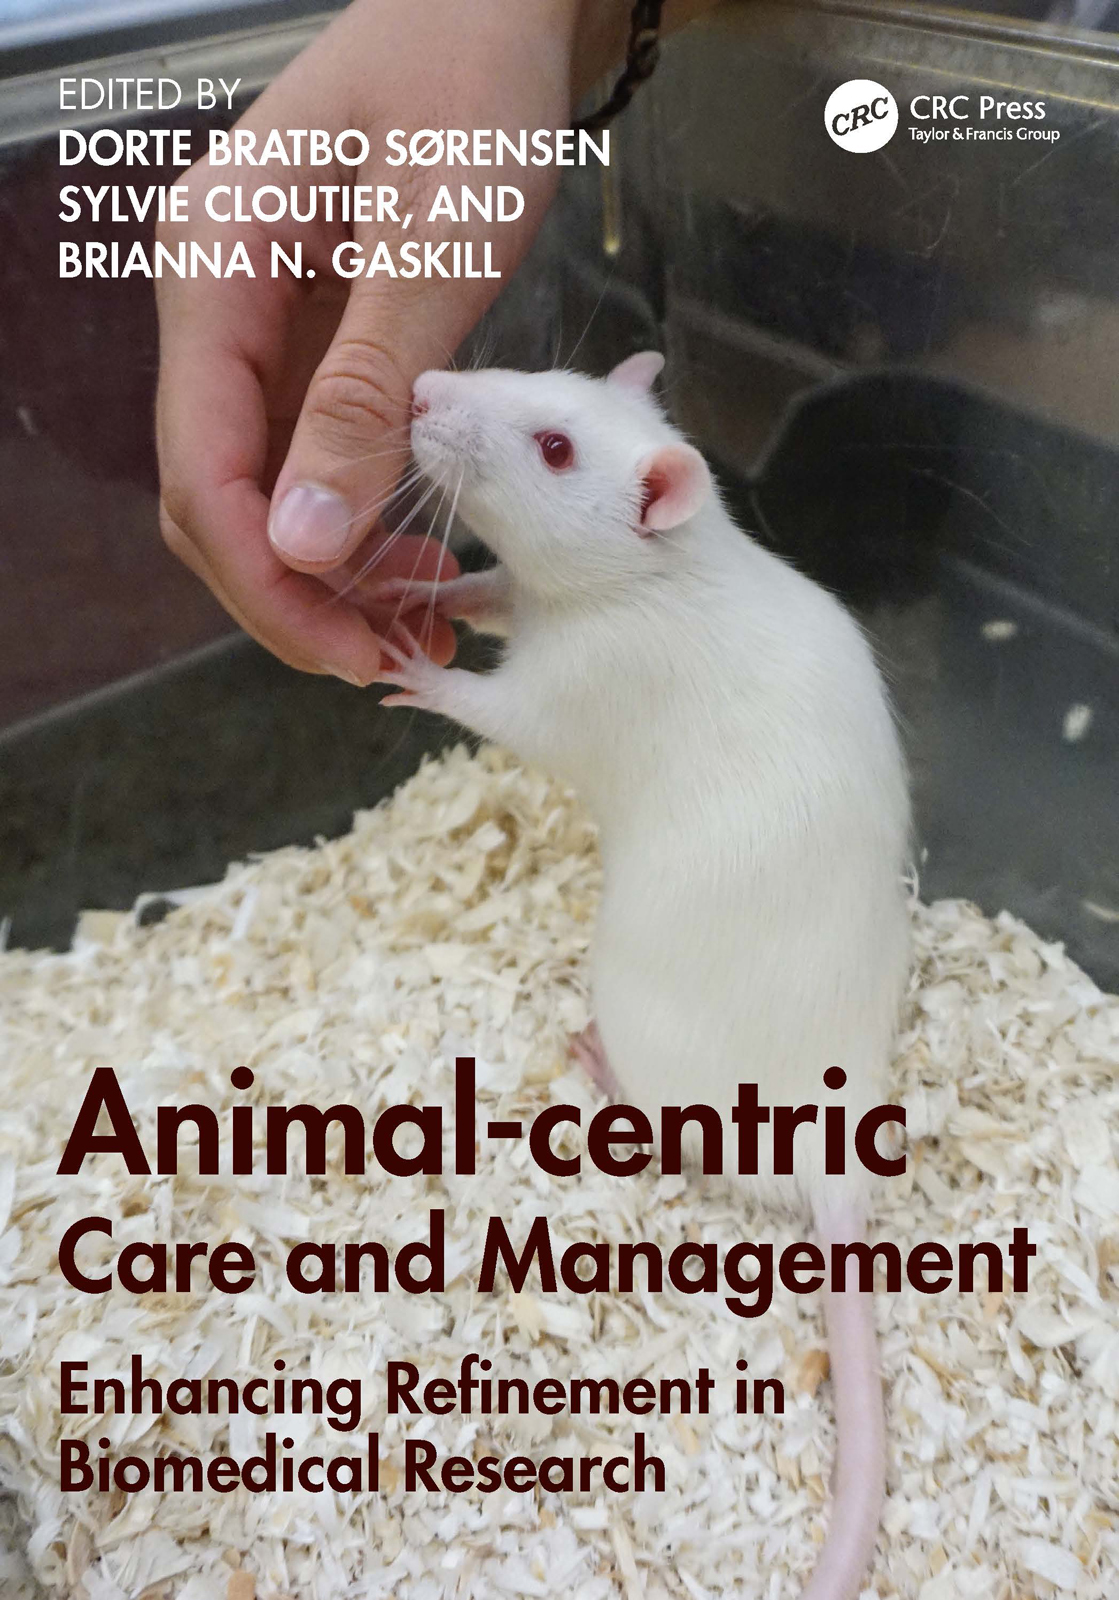 Animal-centric Care and Management